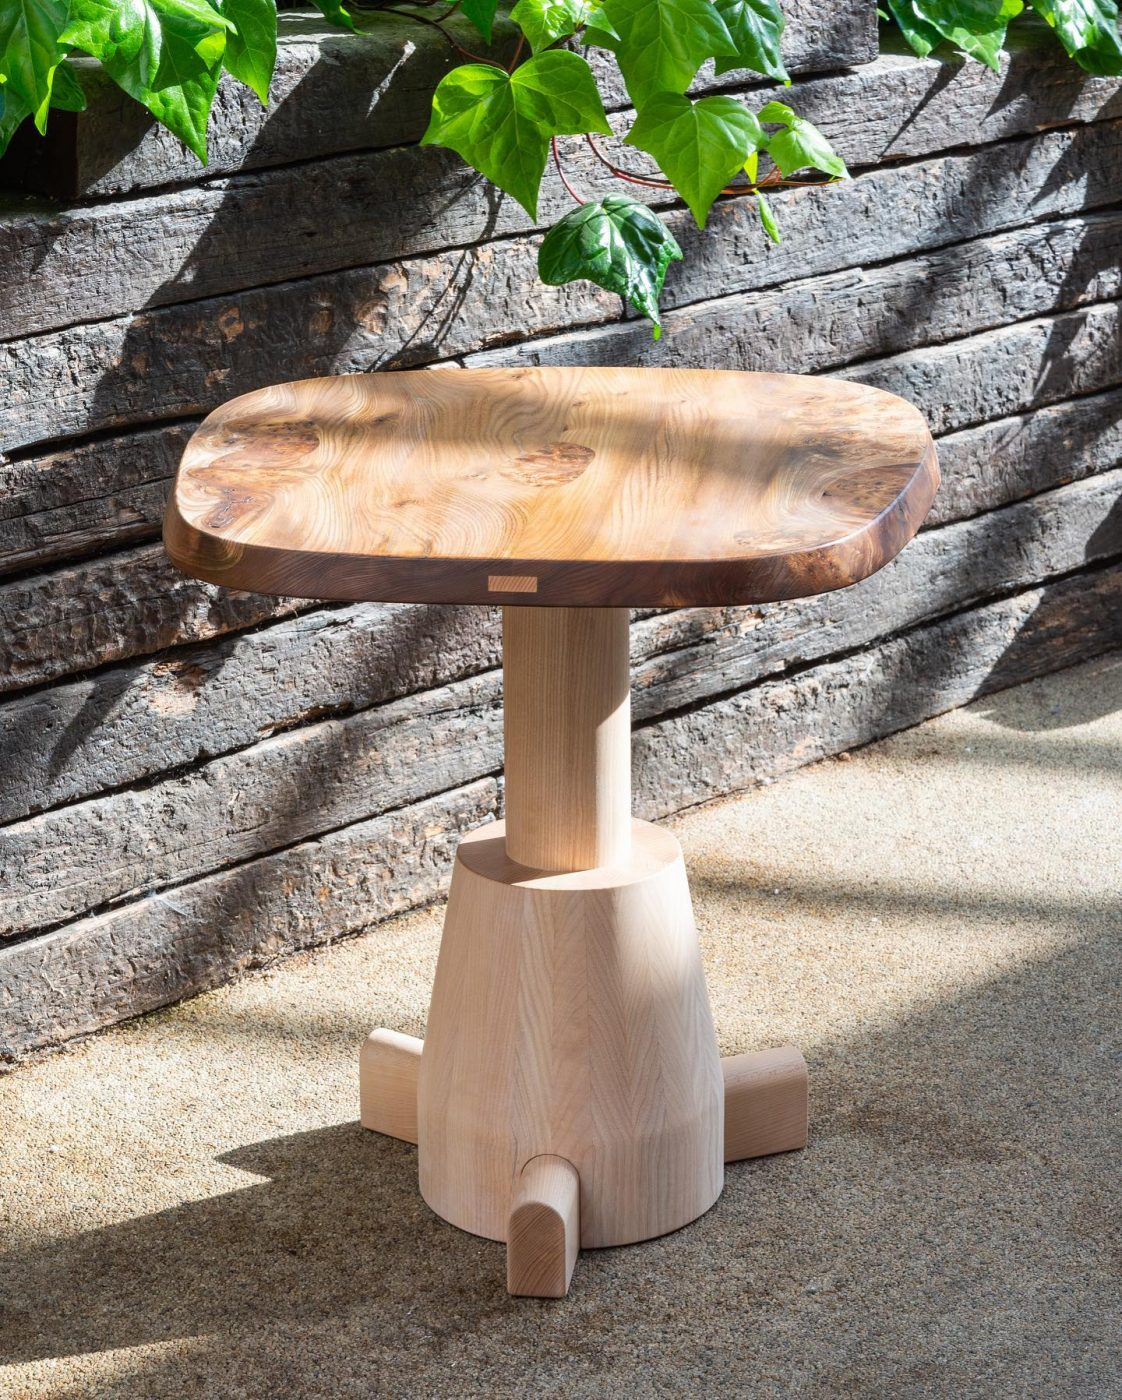 shown-here-is-our-first-prototype-of-the-native-browns-tables.-we-had-chosen-to-accentuate-the-beaut